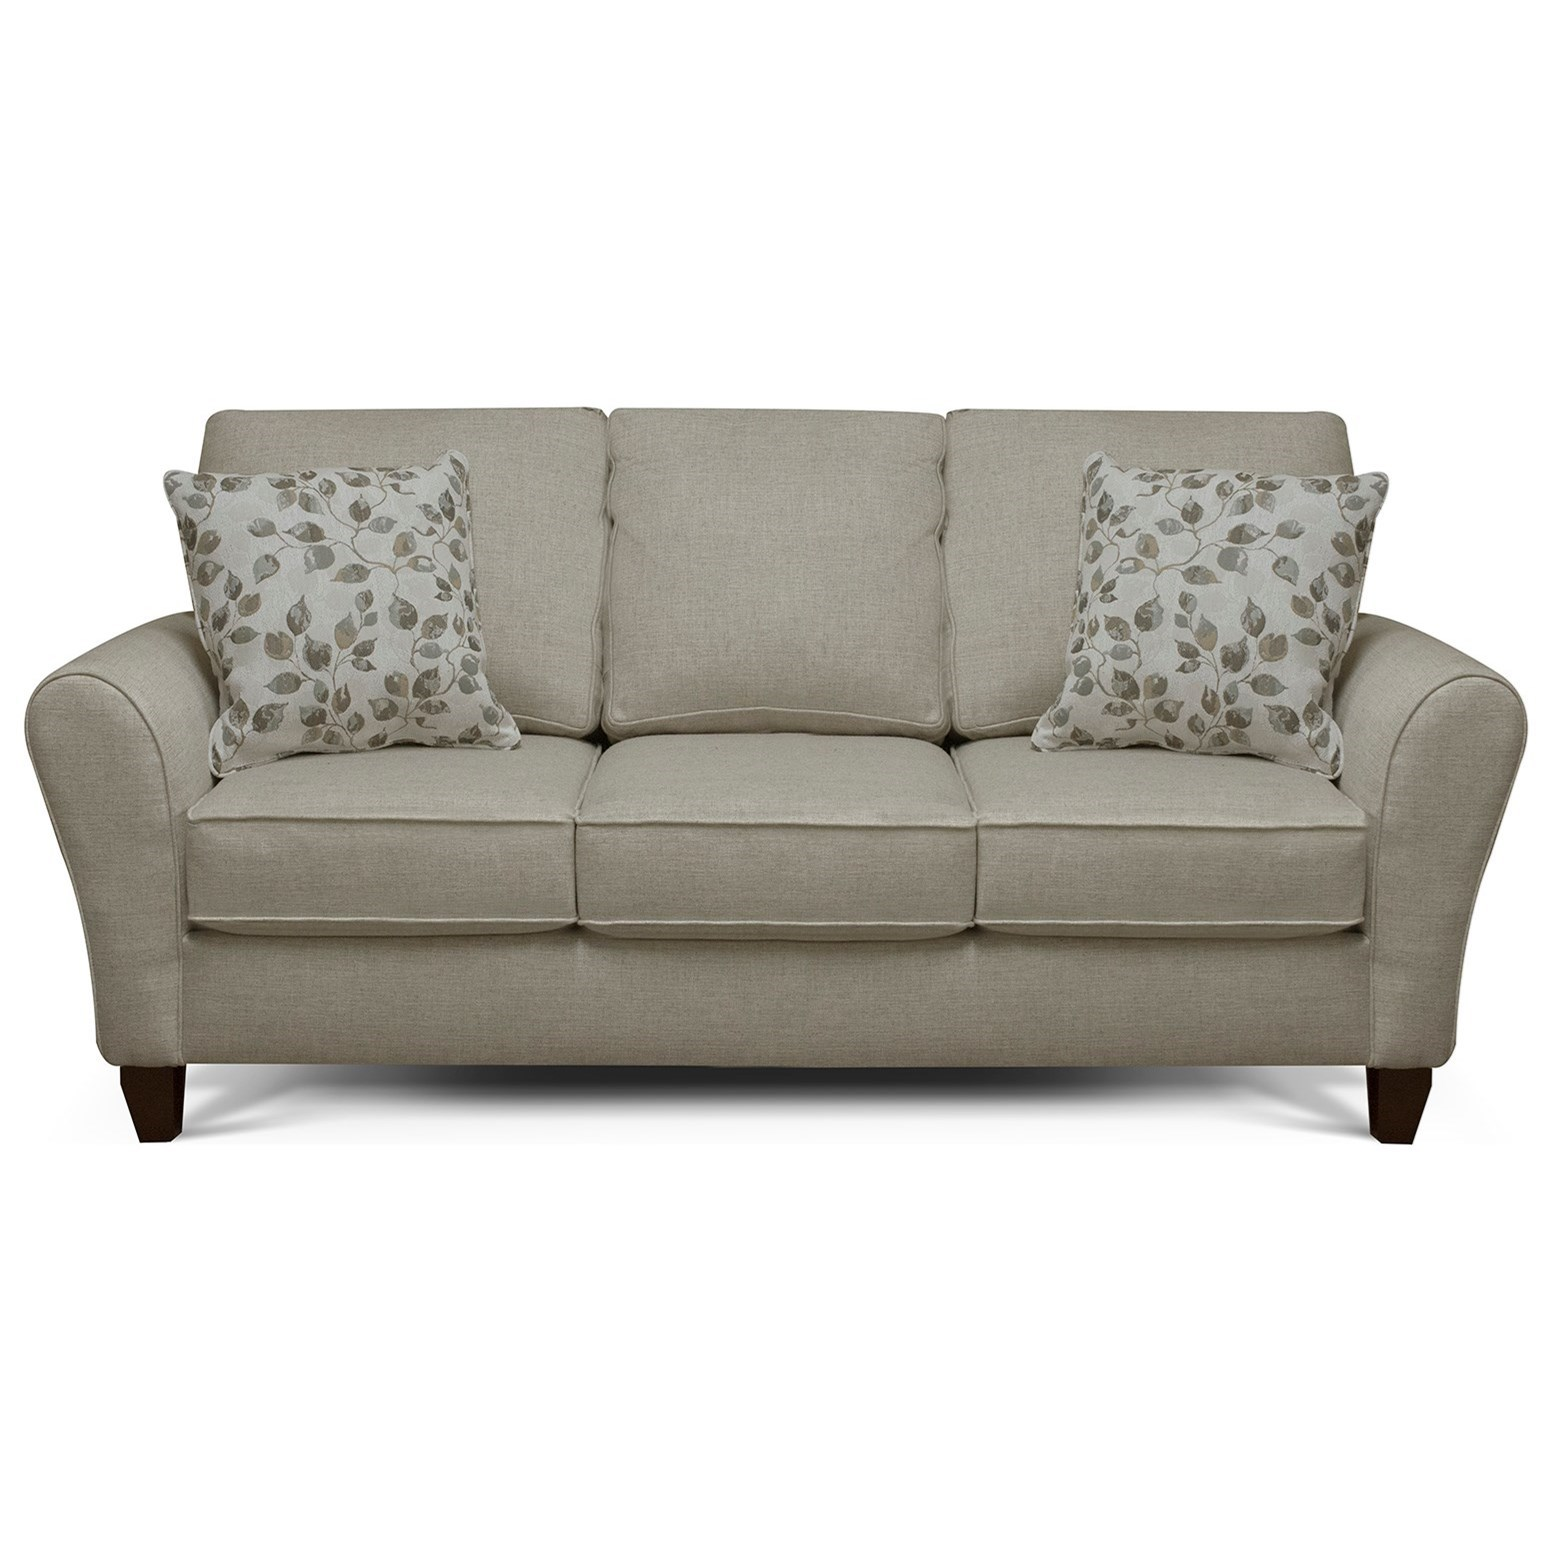 Paxton Sofa by England at Miller Home